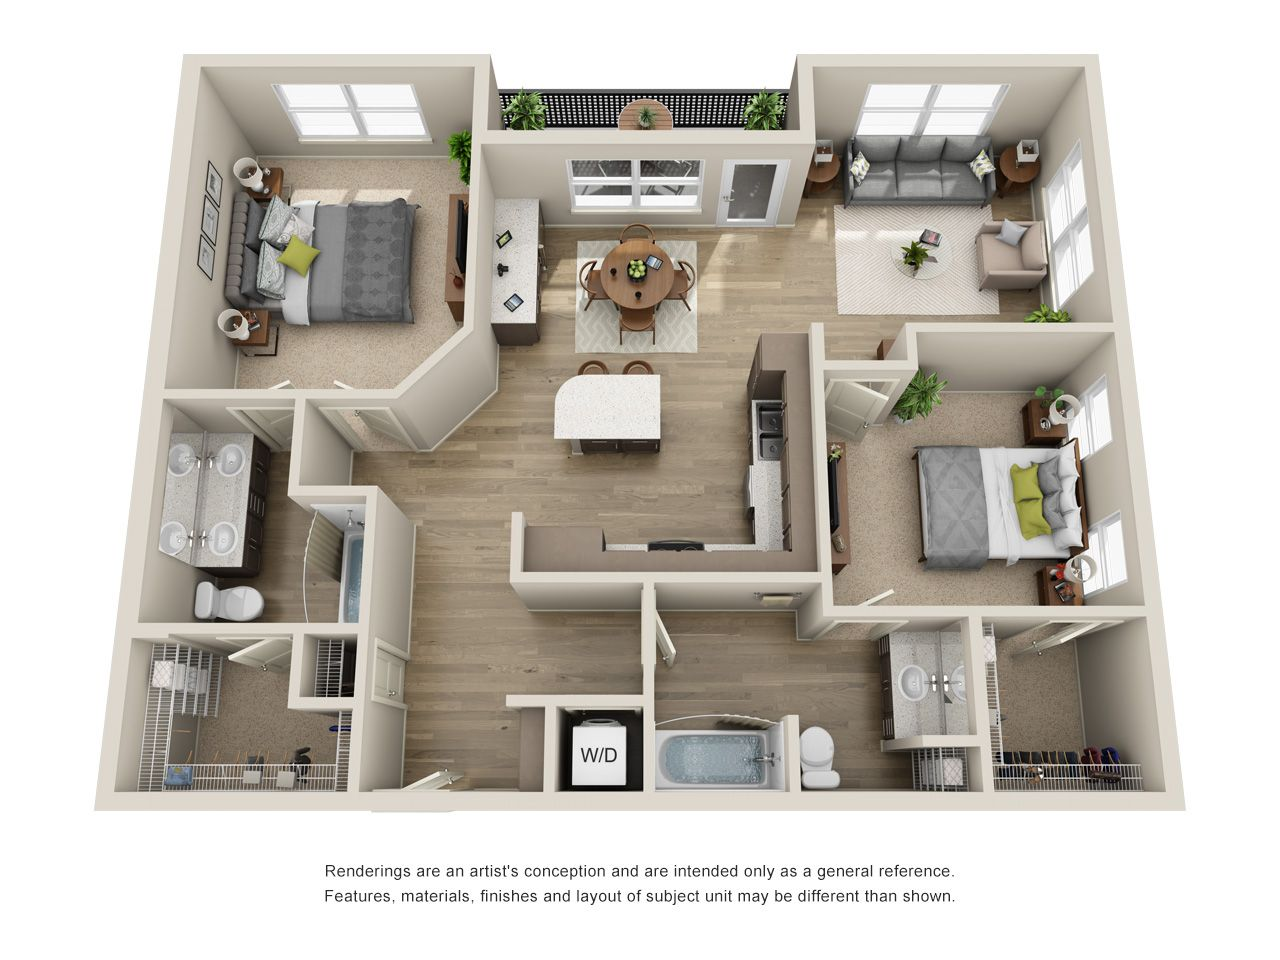 B4 Floor Plan 2x2 1 218 Sq Ft Sims House Design House Layout Plans Sims House